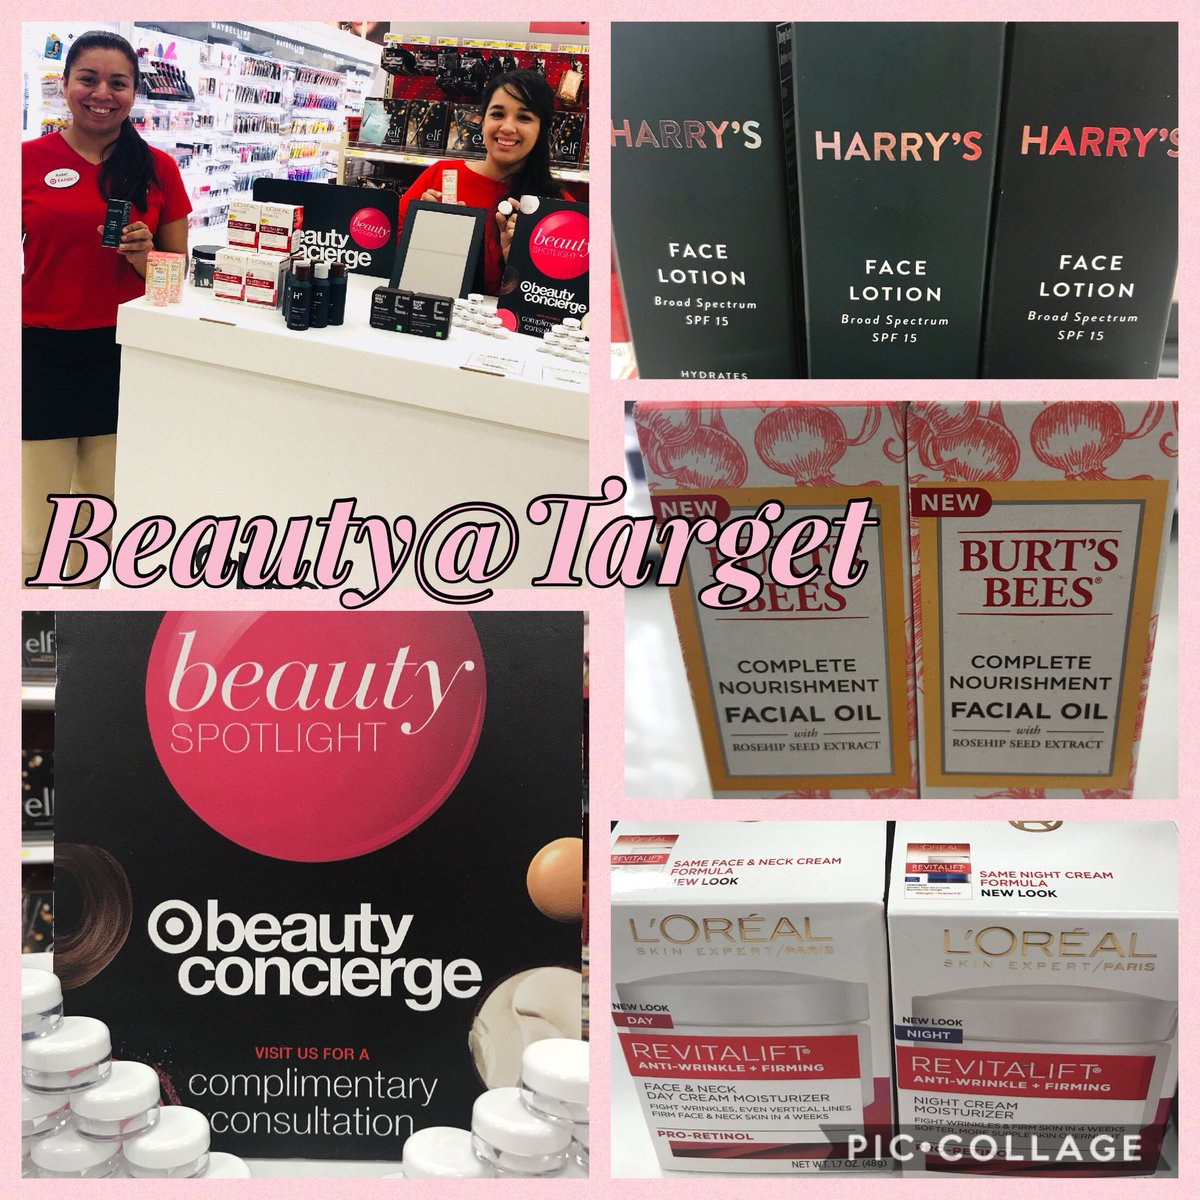 Come to @Target on Nolana and Ware and check out our great #SkinCare our #BeautyAdvisors are raving about and take a sample home! @salazarlucy10 @johnp_sheehan @jlflores26 #TargetRunandDone #Beauty <br>http://pic.twitter.com/cBj5BYnfrn